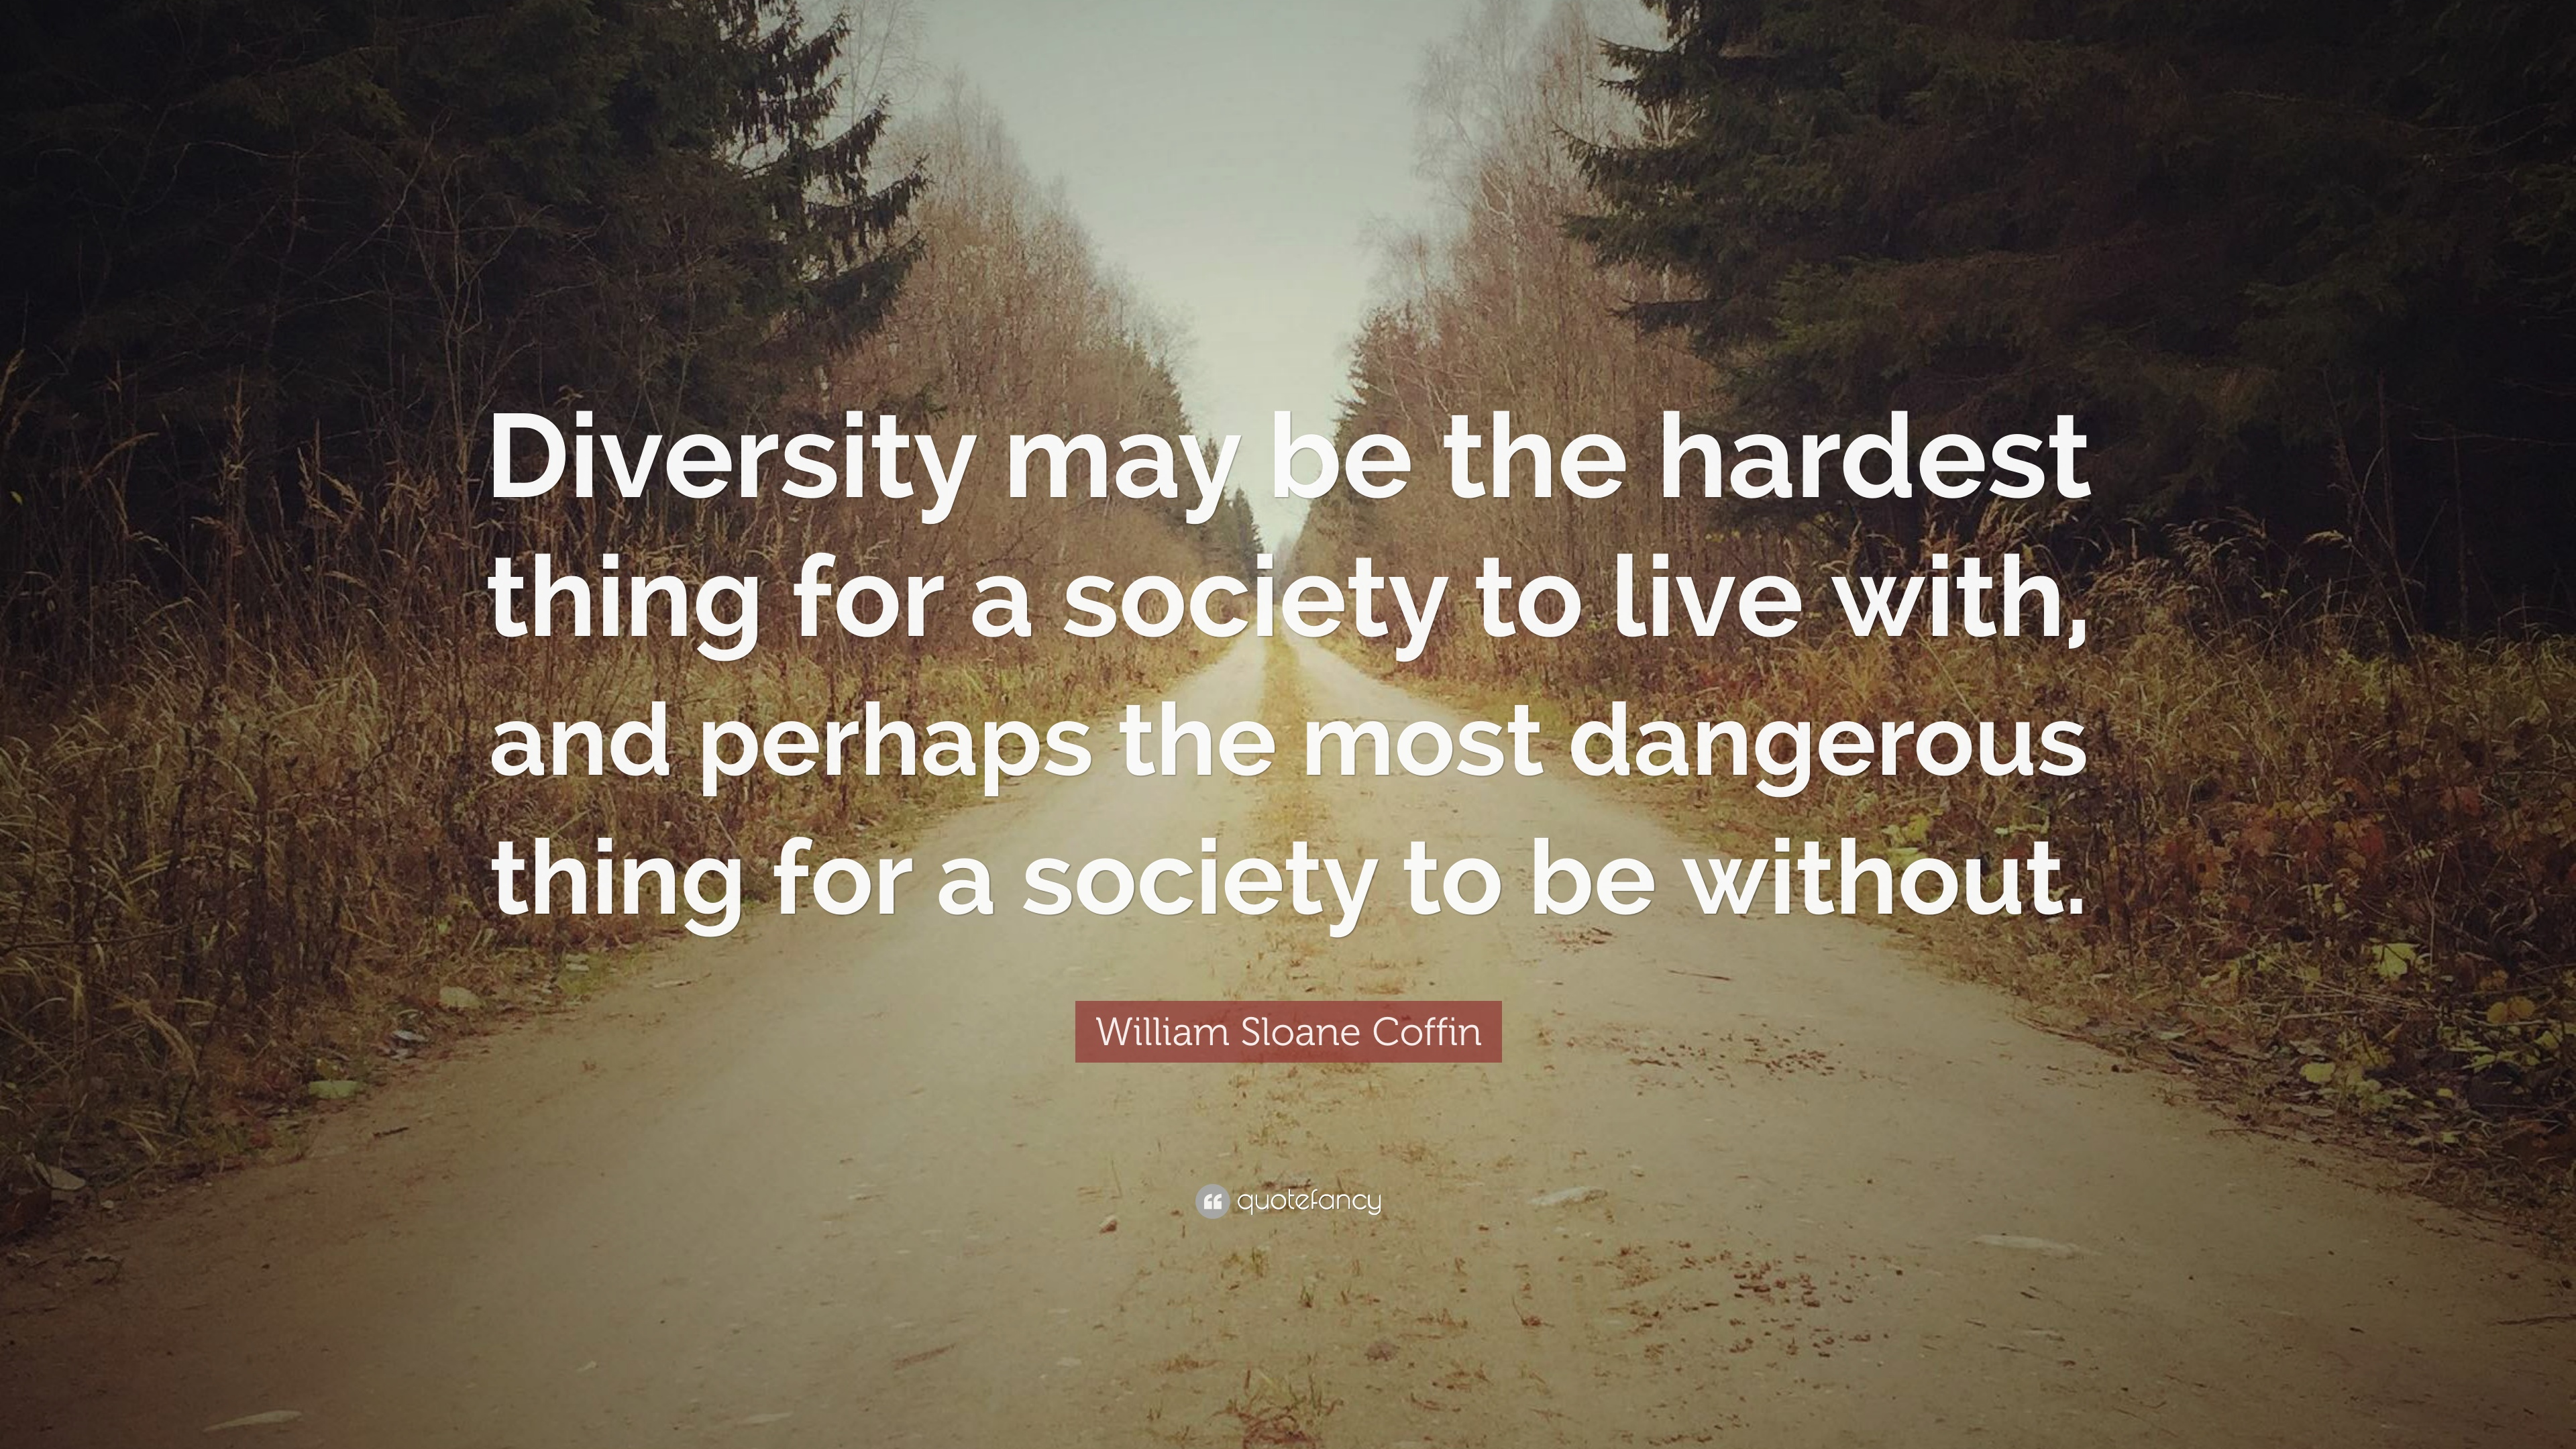 William Sloane Coffin Jr Quote Diversity May Be The